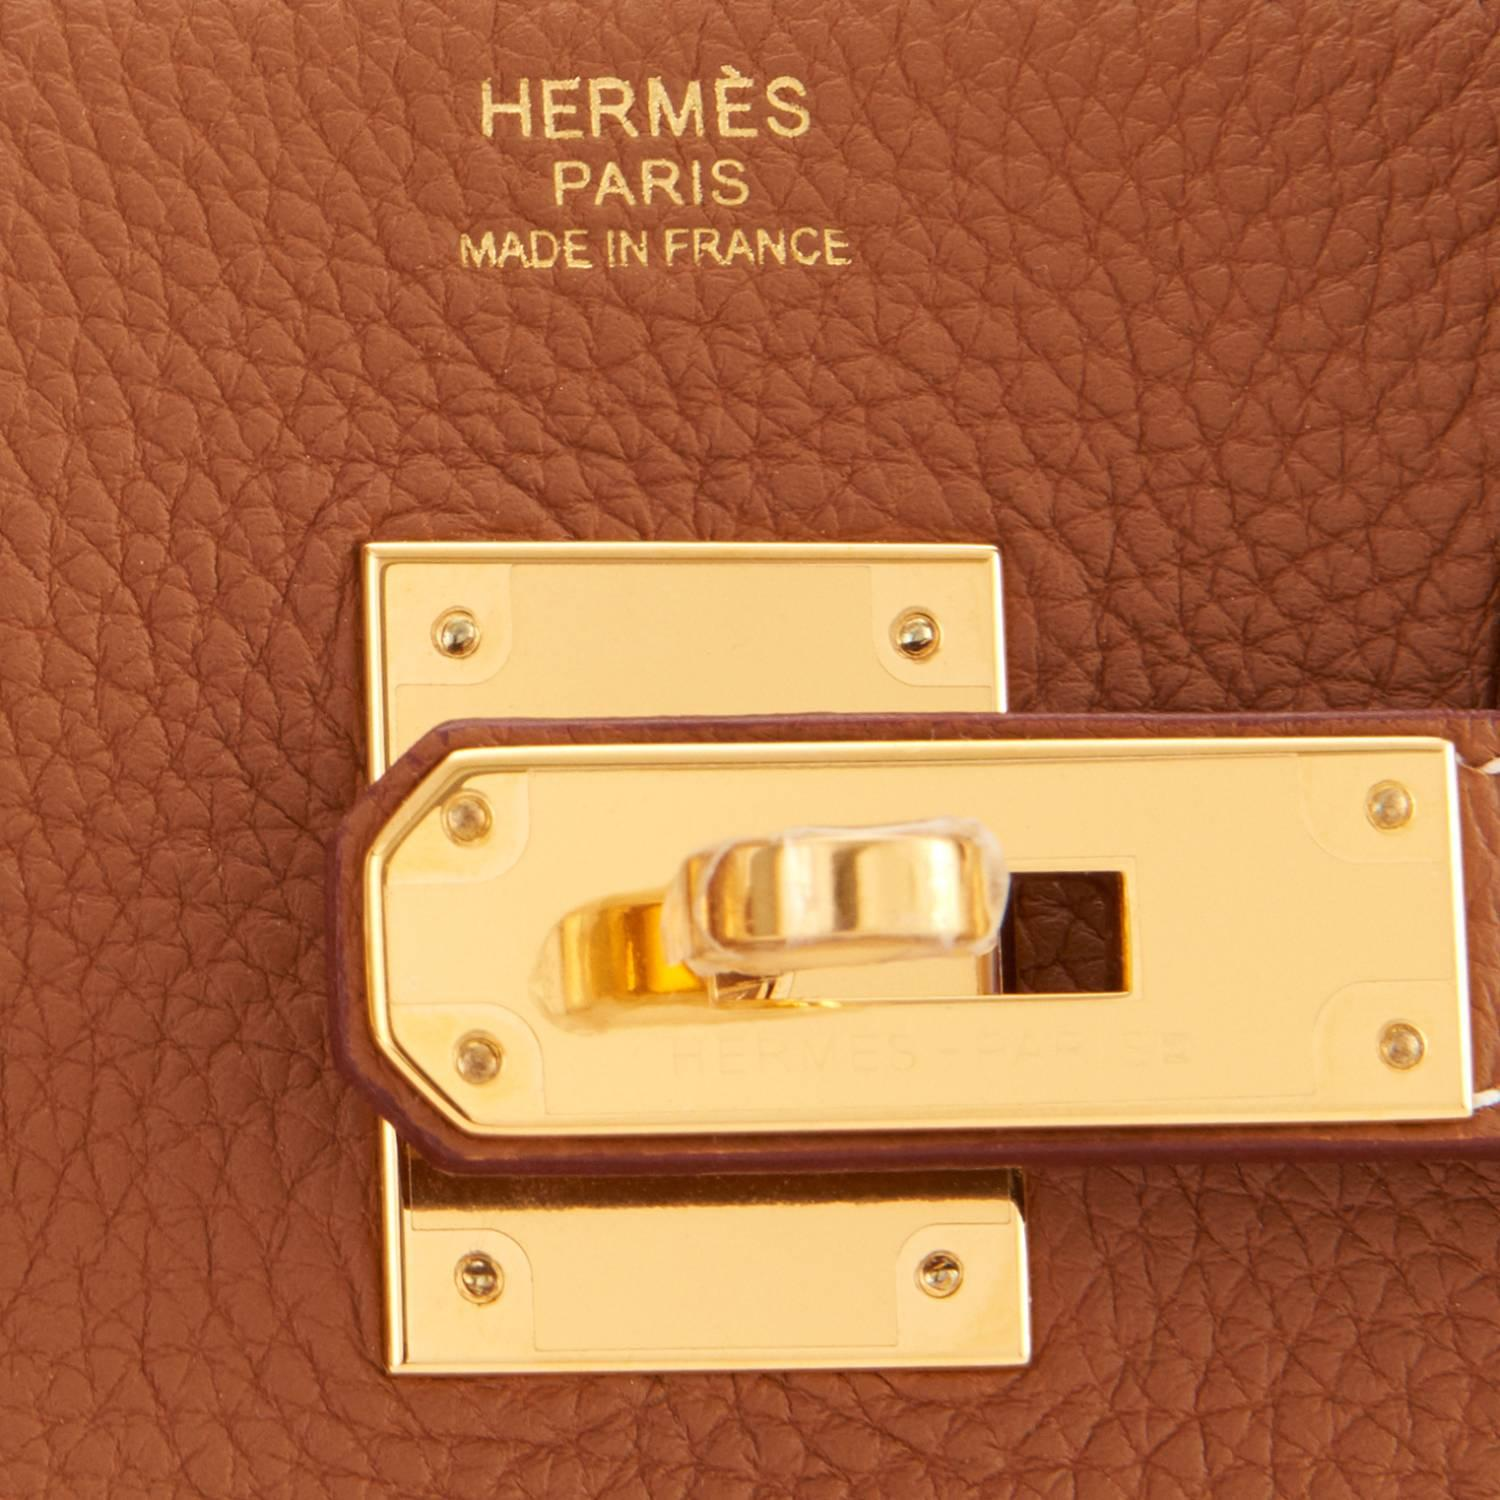 c7a037f50c6c australia hermes bag xl global services 222ae 7e735